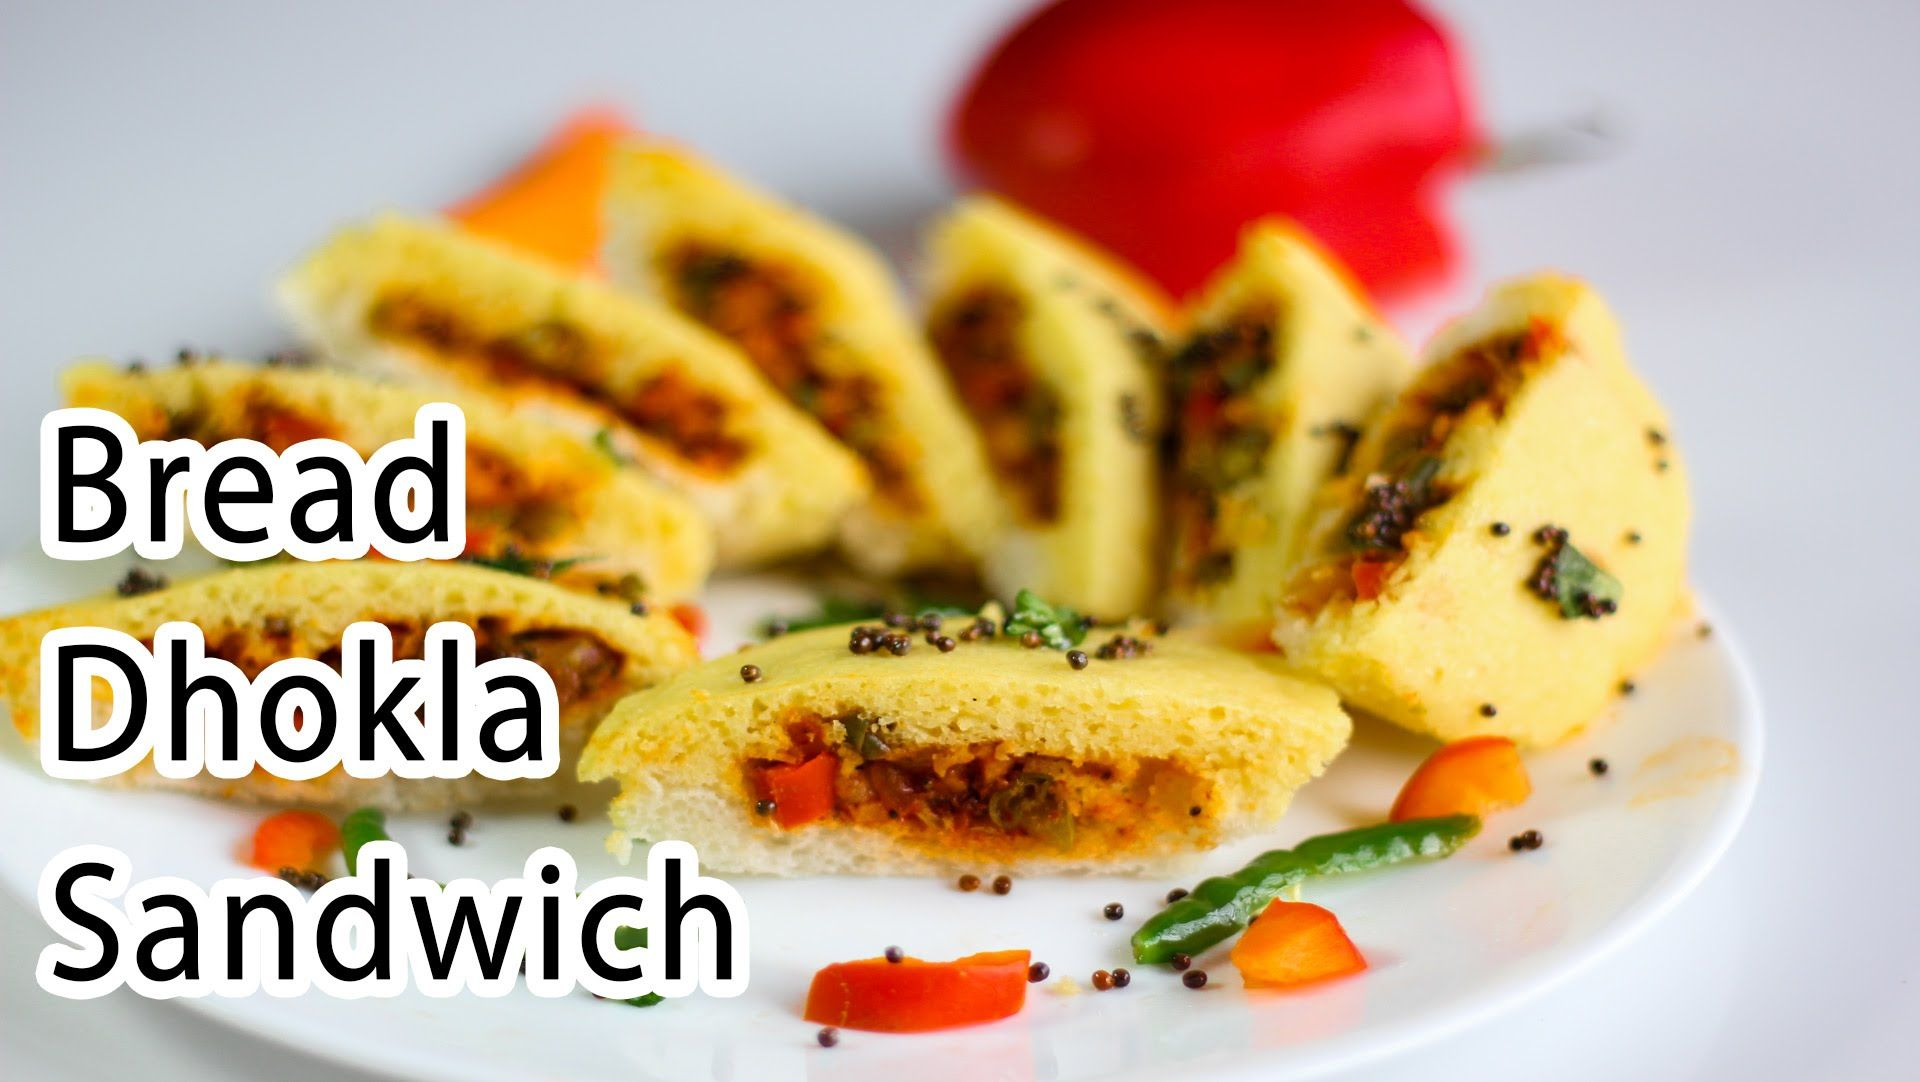 Bread dhokla sandwich recipe in hindi indian breakfast recipes food bread dhokla sandwich recipe in hindi indian forumfinder Images